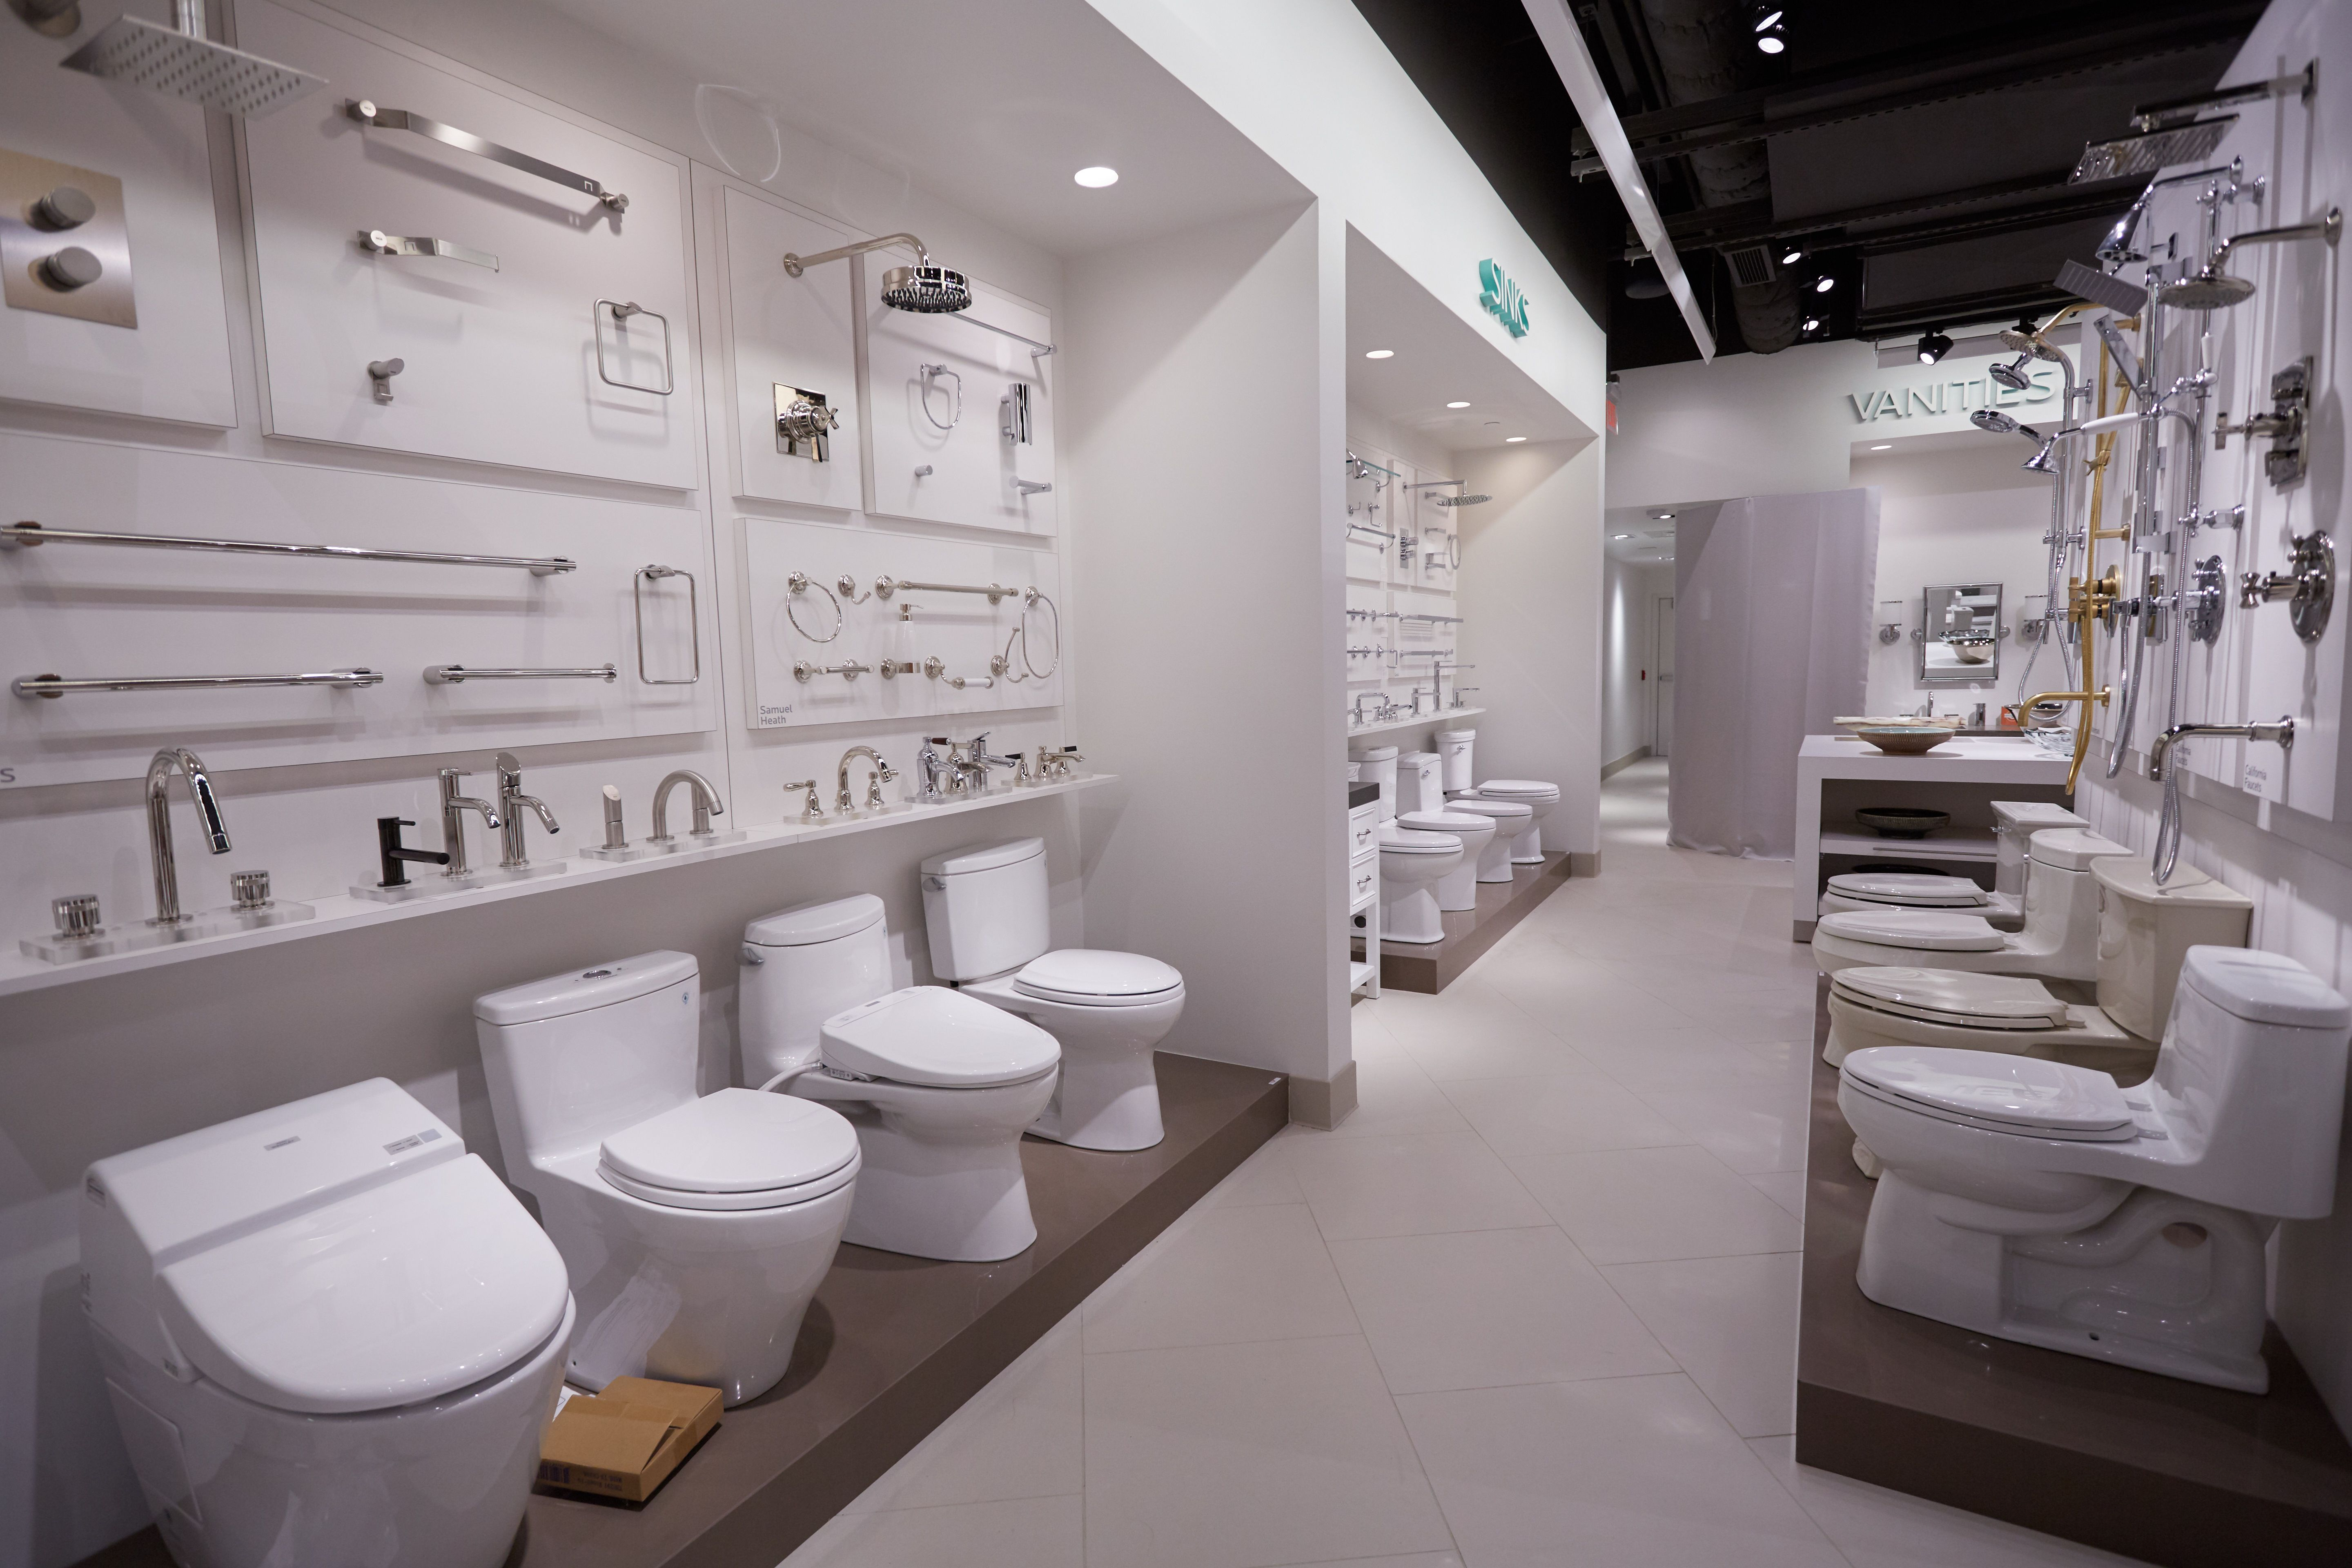 You Can Find The Best Essentials For Your Bathroom In Our Bath Section Of The Showroom Showroom Interior Design Showroom Design Bathroom Showrooms